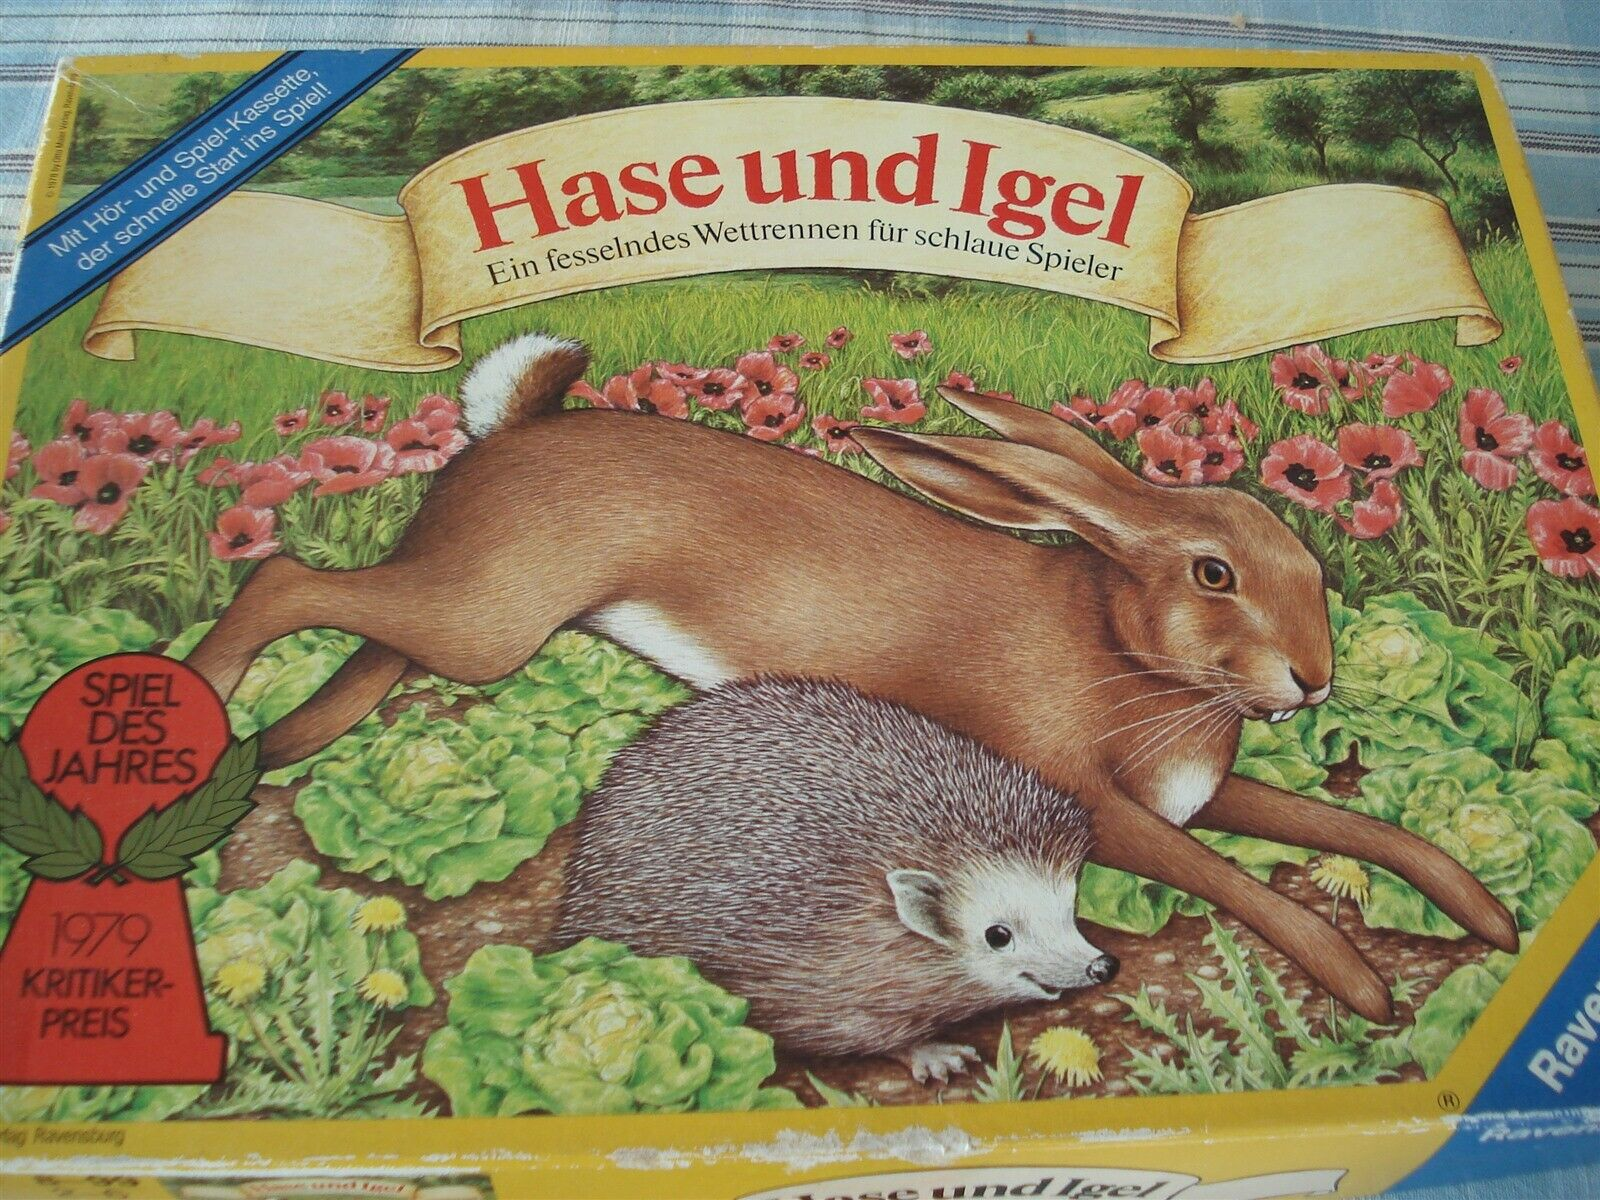 HASE UND IGEL - HARE AND TORTOISE GAME - RACE GAME - 1978 - HARE AND HEDGEHOG